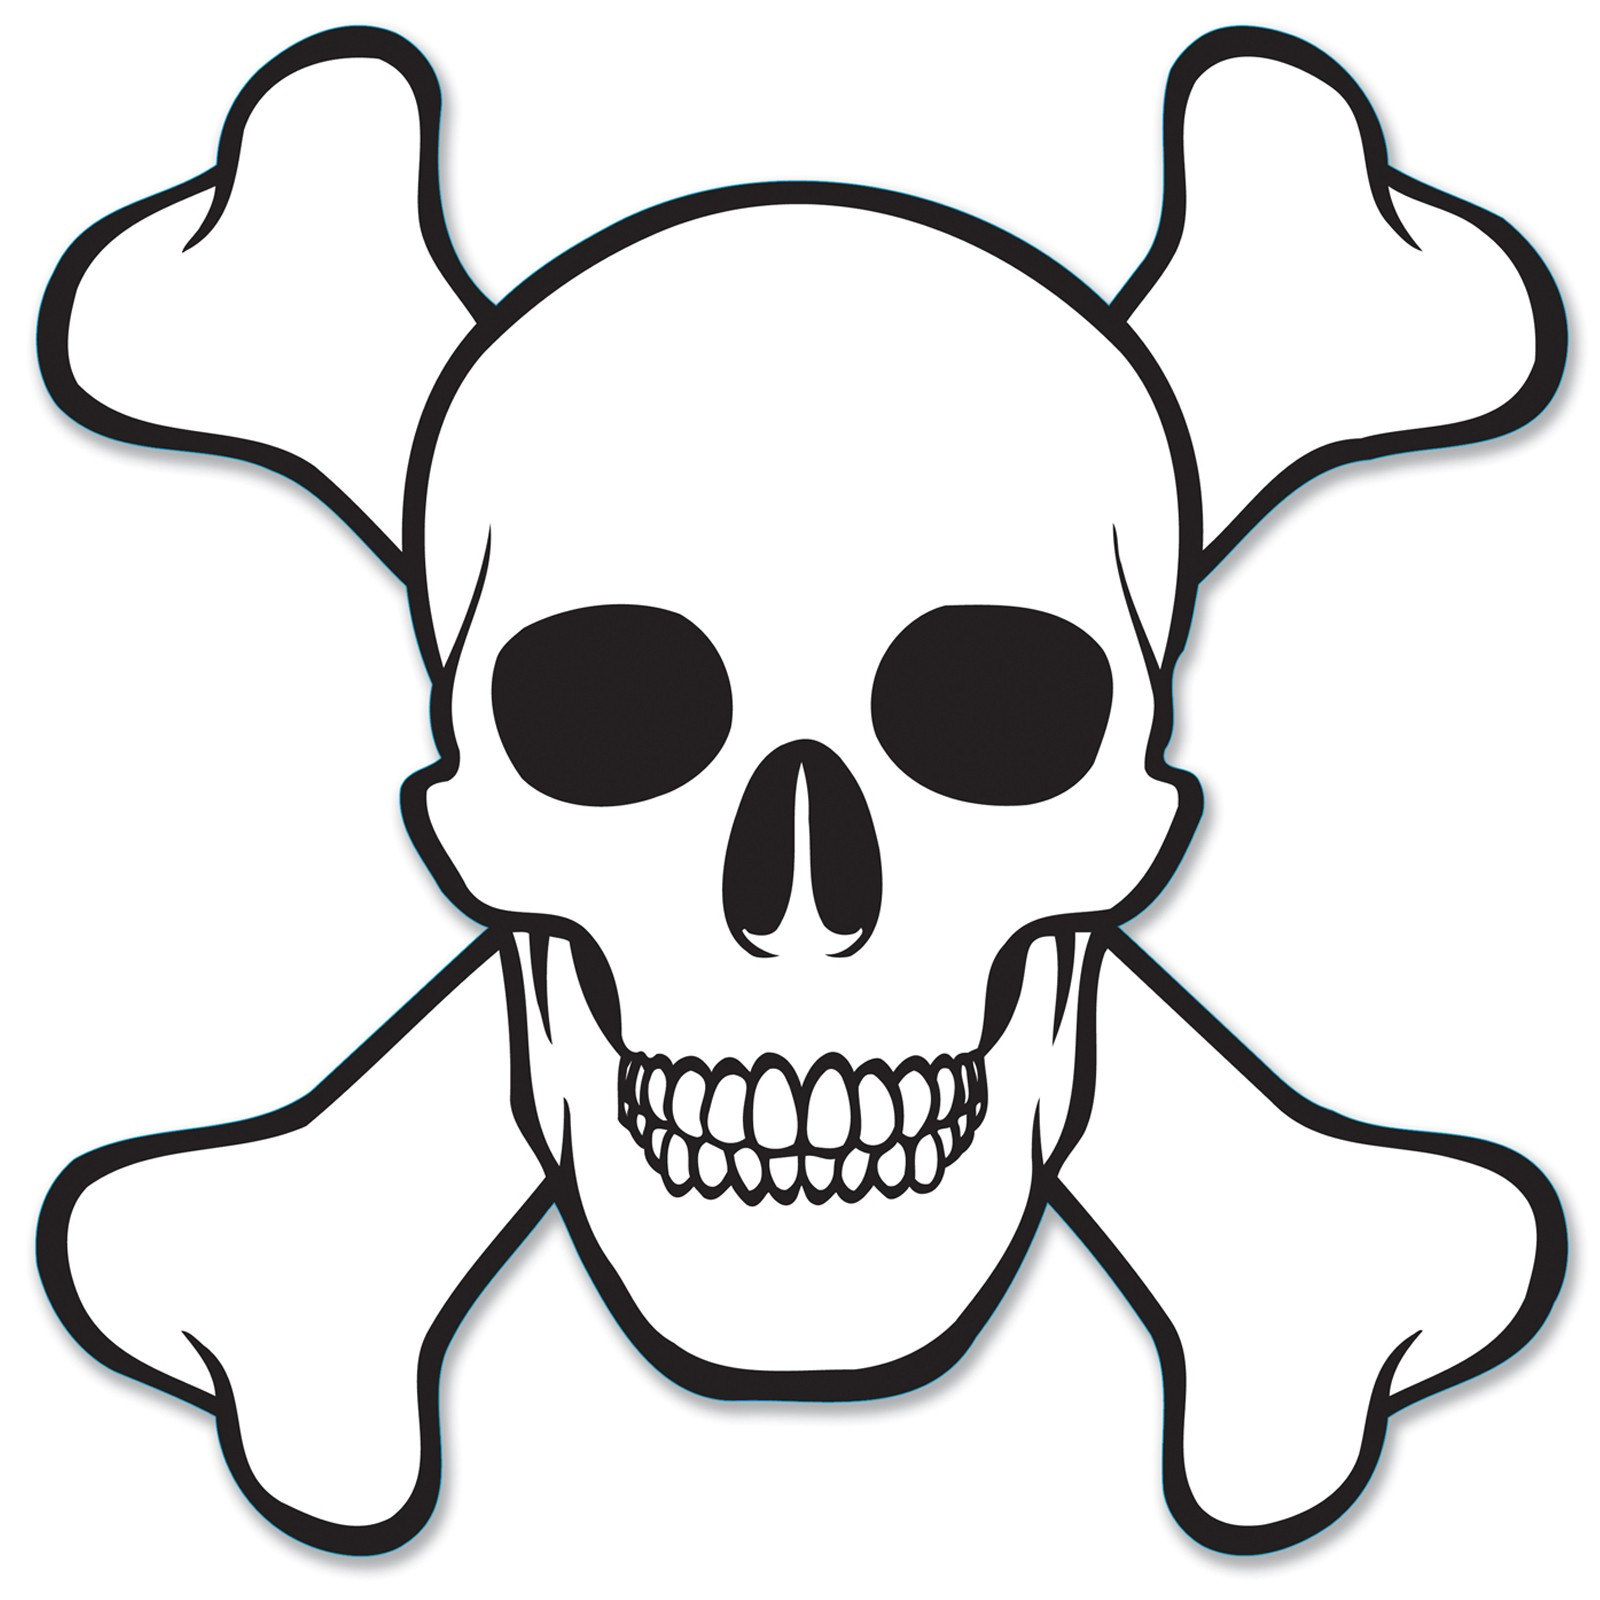 Skull and crossbones symbols and unicode characters learn how to make and write a skull symbol crossbones character with letter and number